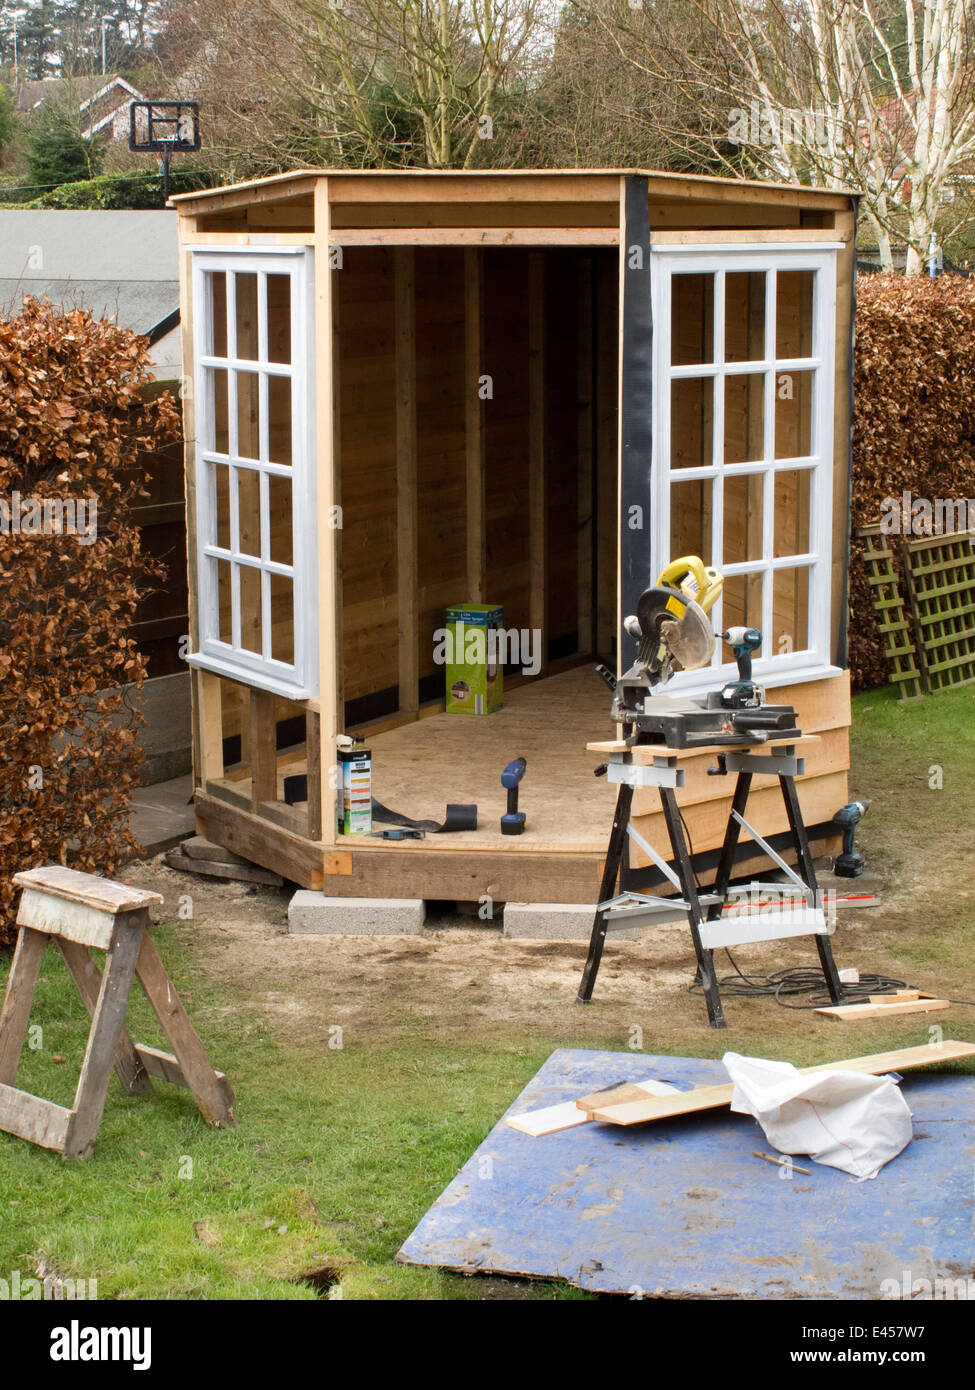 stock photo self building shed constructing garden shed with wooden frame and oak feather board round large windows - Garden Sheds With Windows